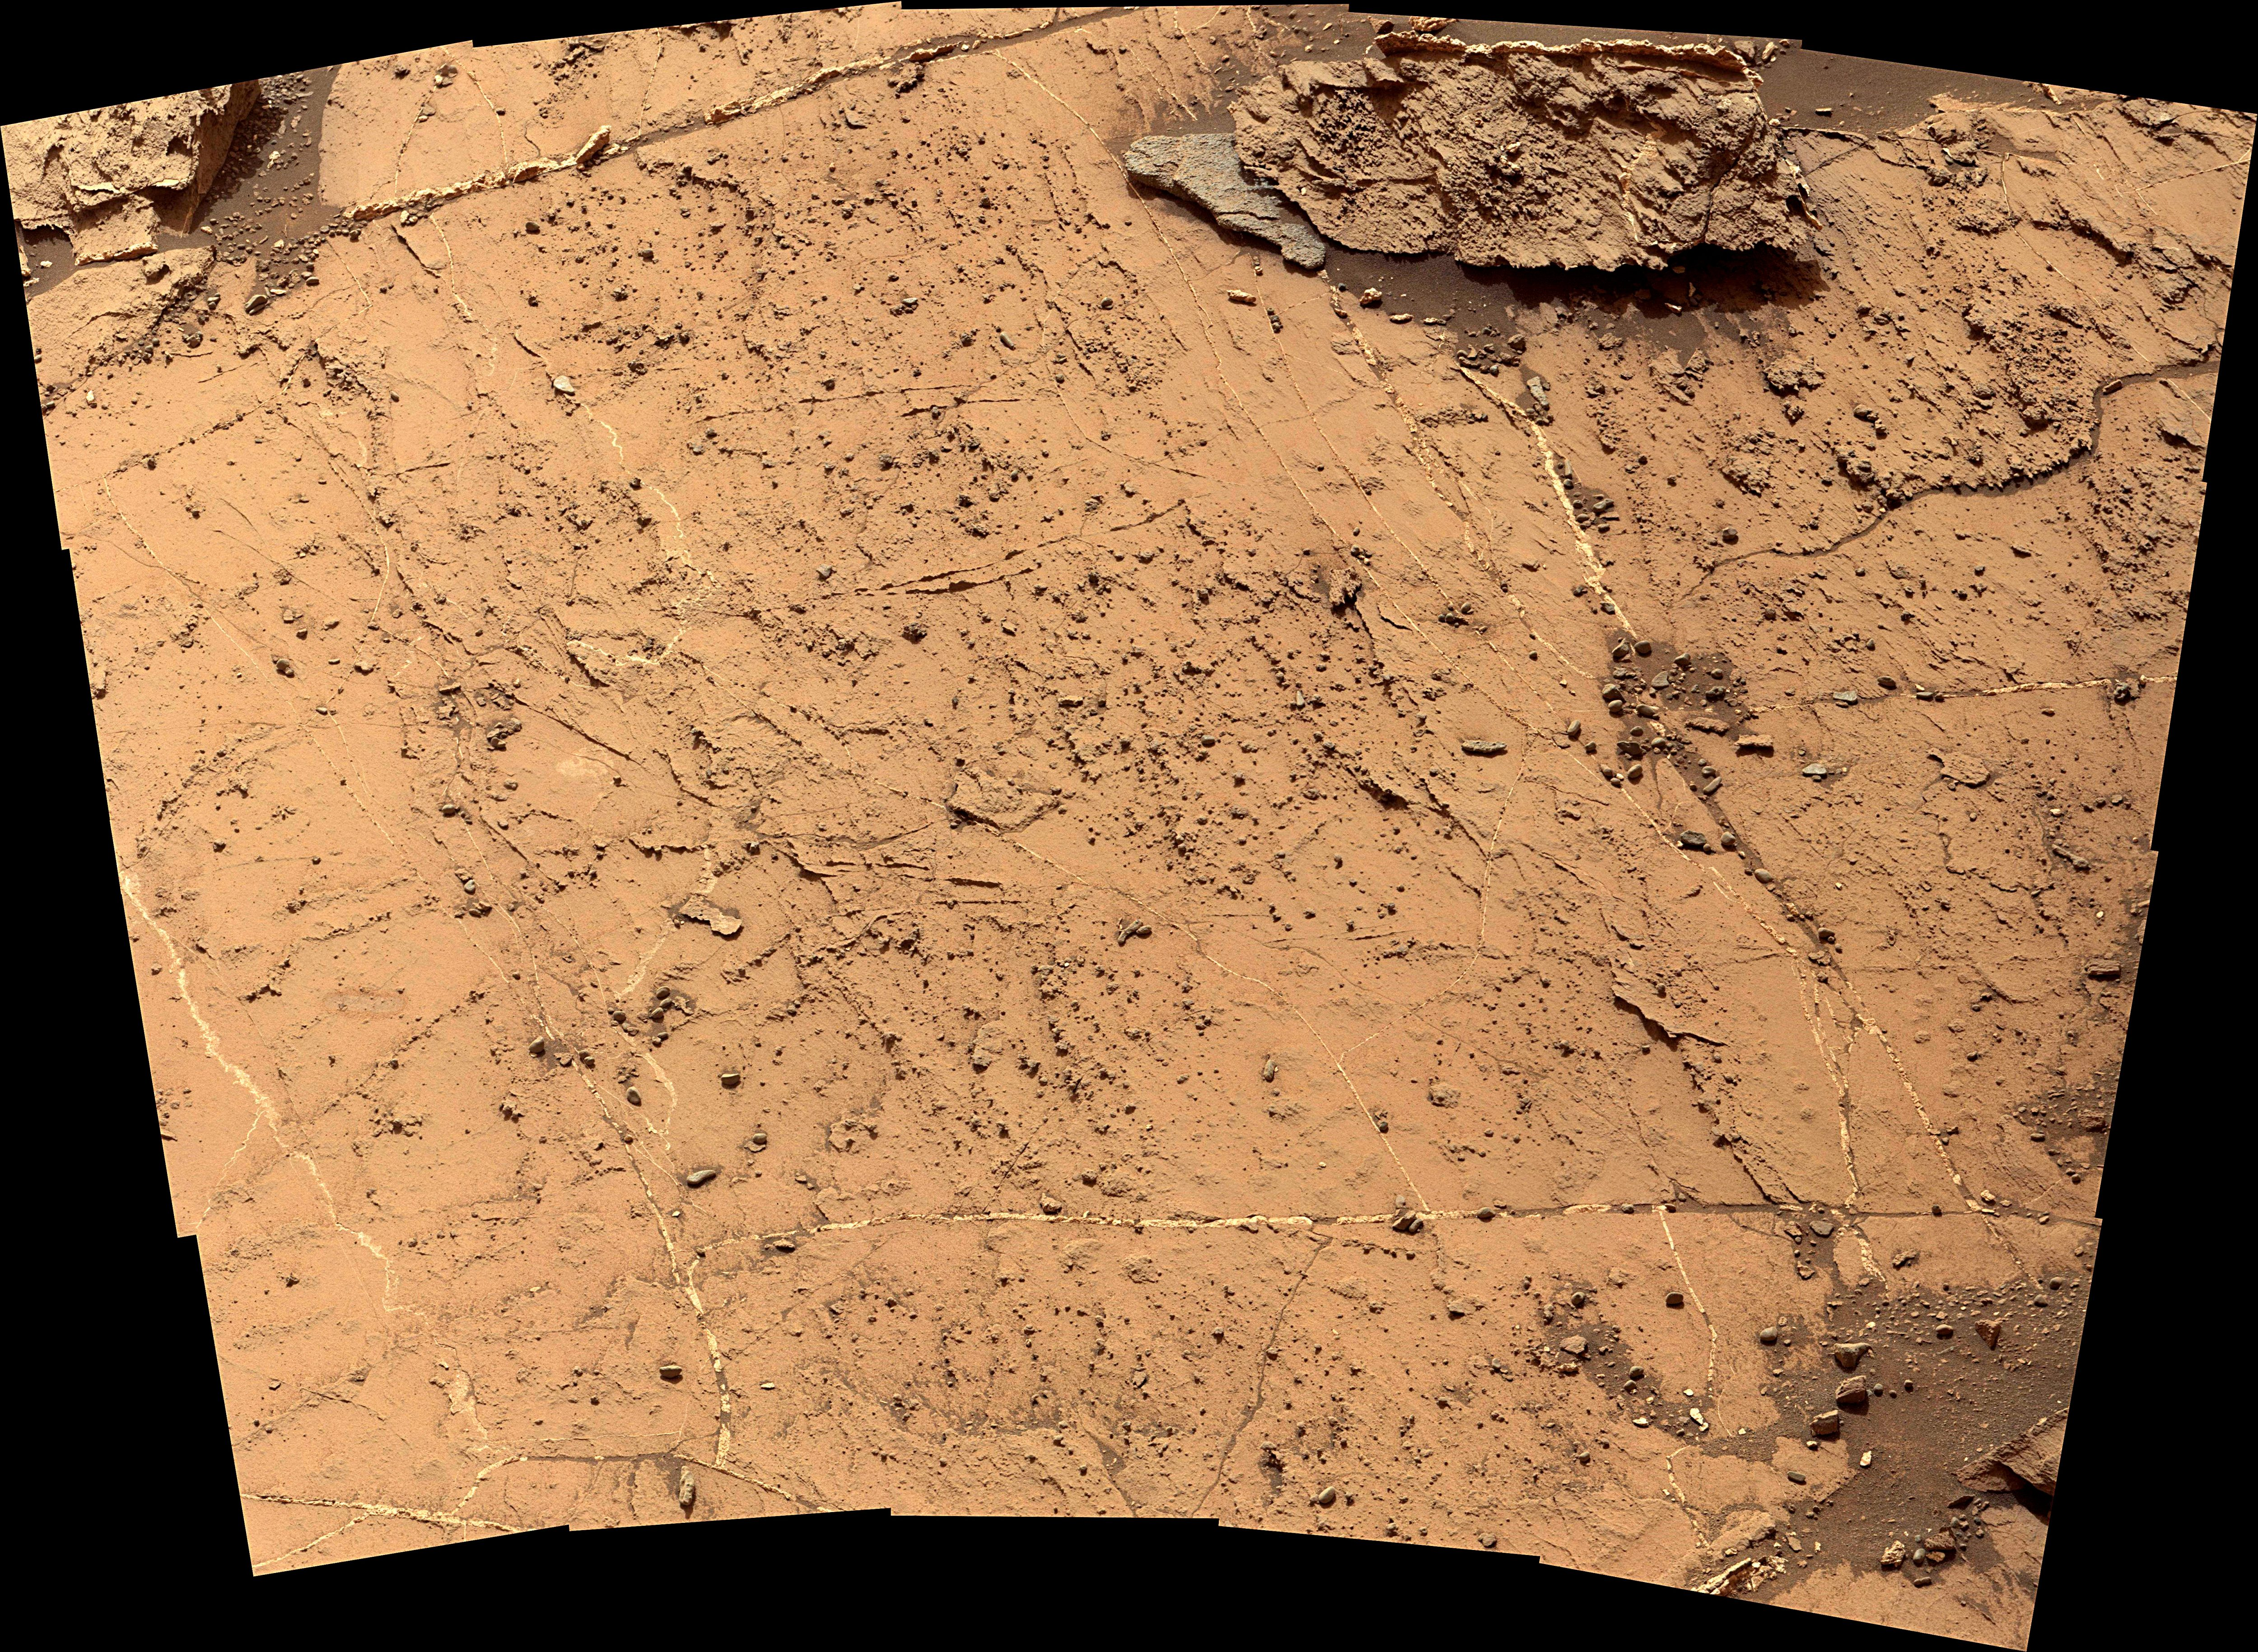 panoramic-curiosity-rover-view-sol-1456-e-was-life-on-mars